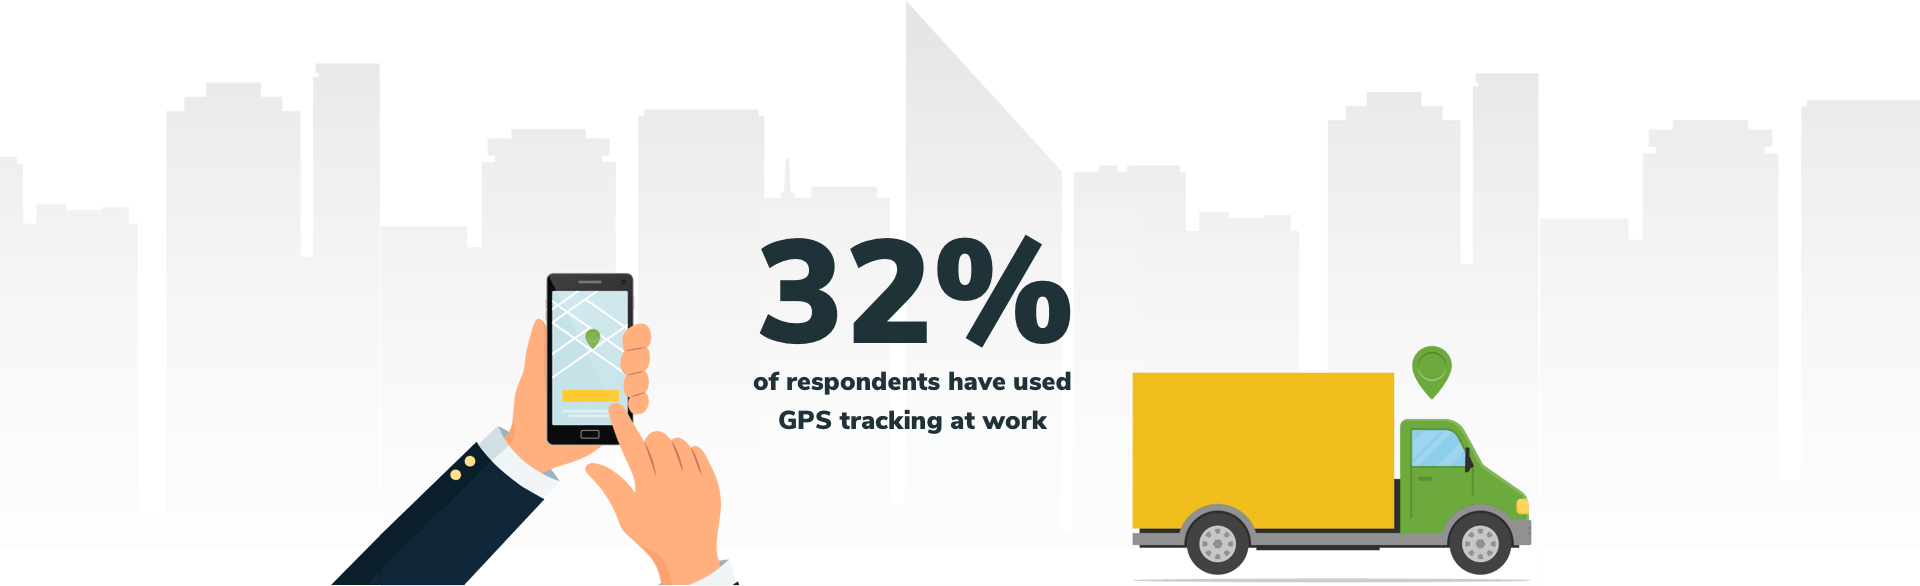 32 percent have used GPS tracking at work